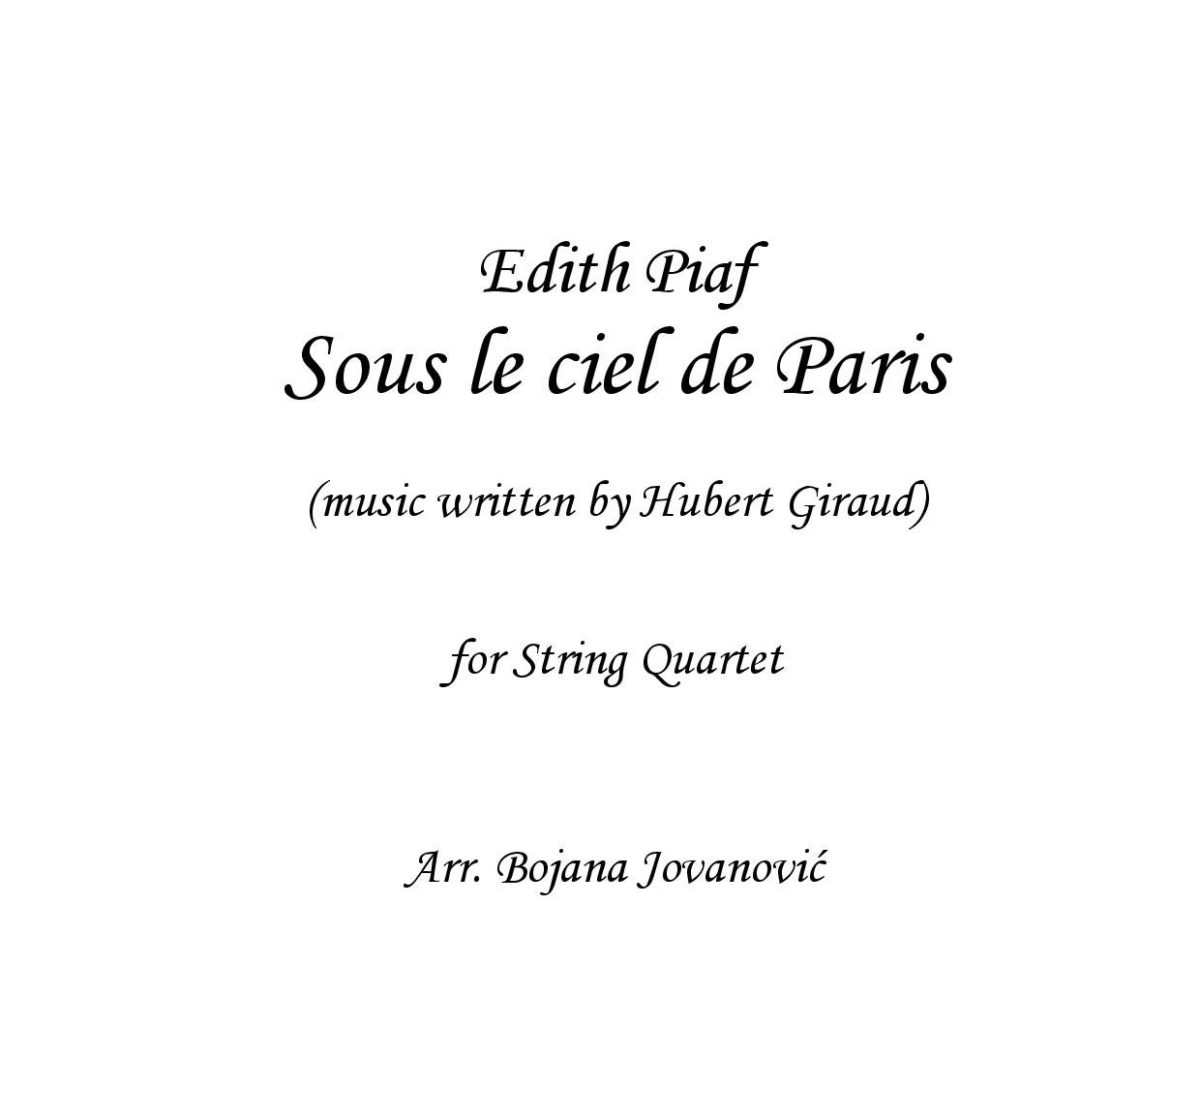 Sous le ciel de Paris (Edith Piaf) - Sheet Music